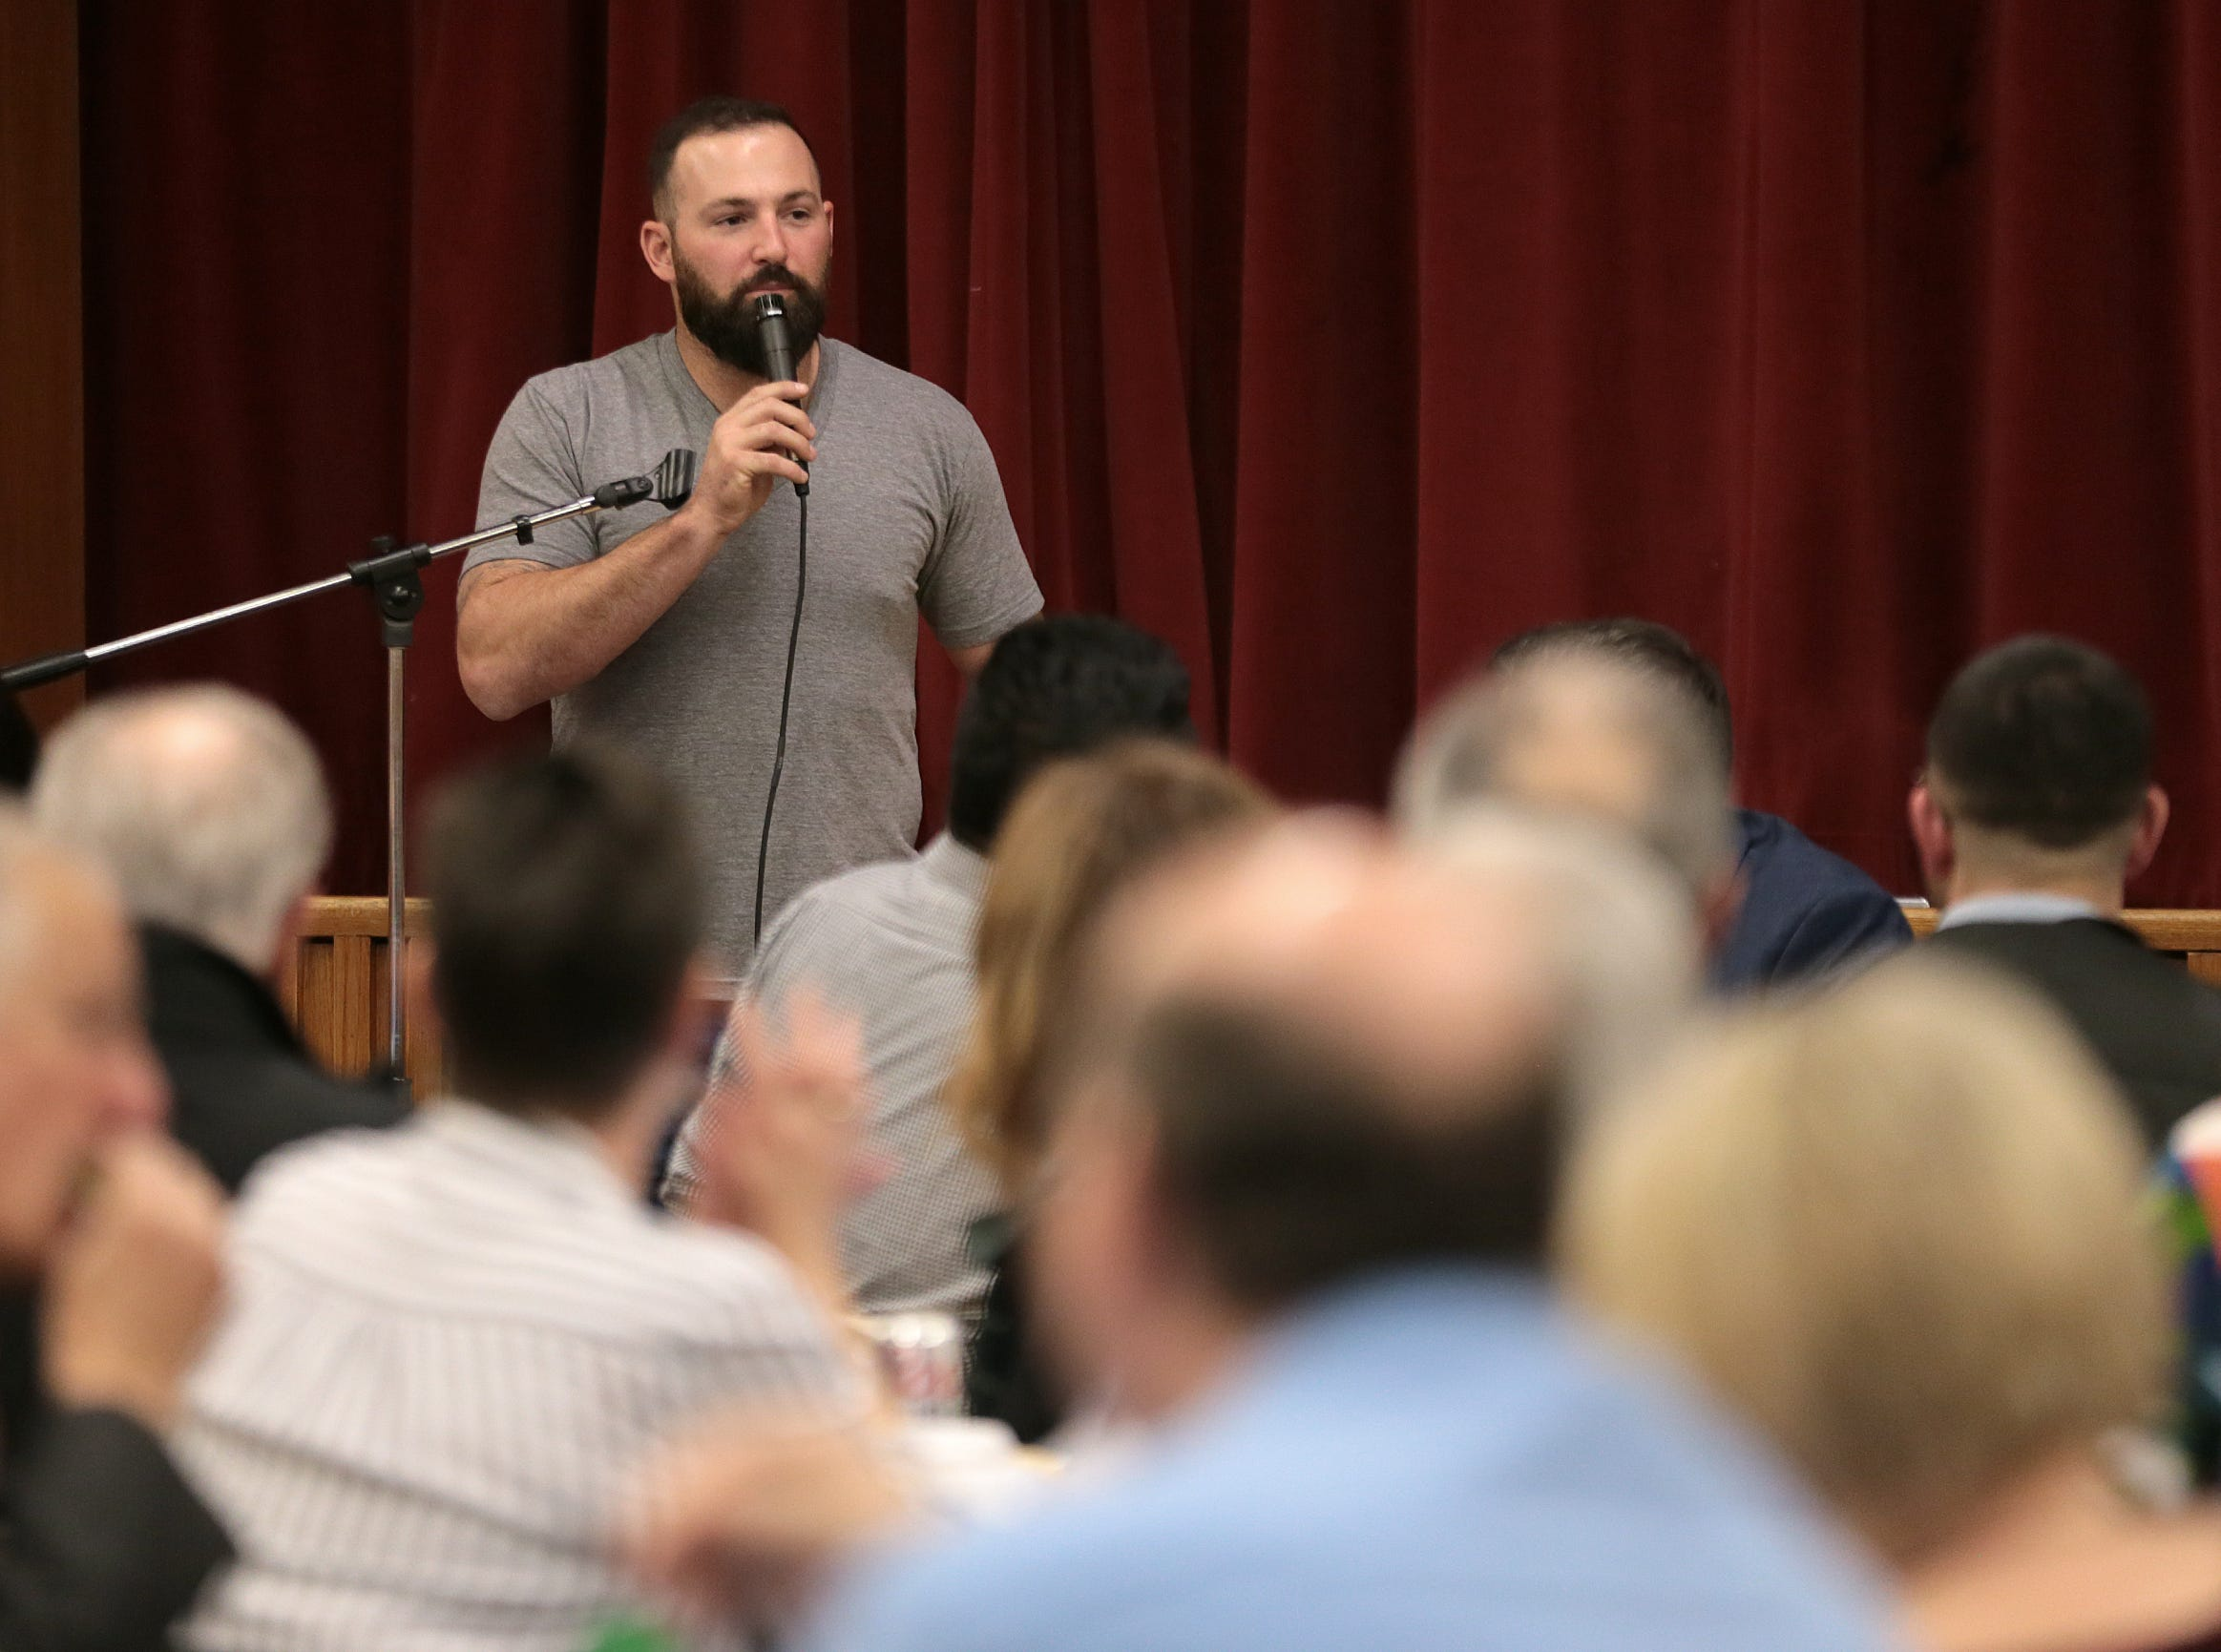 Cody Decker is visiting El Paso to show his film 'Heading Home: The Tale of Team Israel' and to host a pair of hitting clinics at Southwest University Park. Saturday, Decker introduced the documentary at Temple Mt. Sinai to the delight of El Paso's Jewish community and several Cody Decker fans.